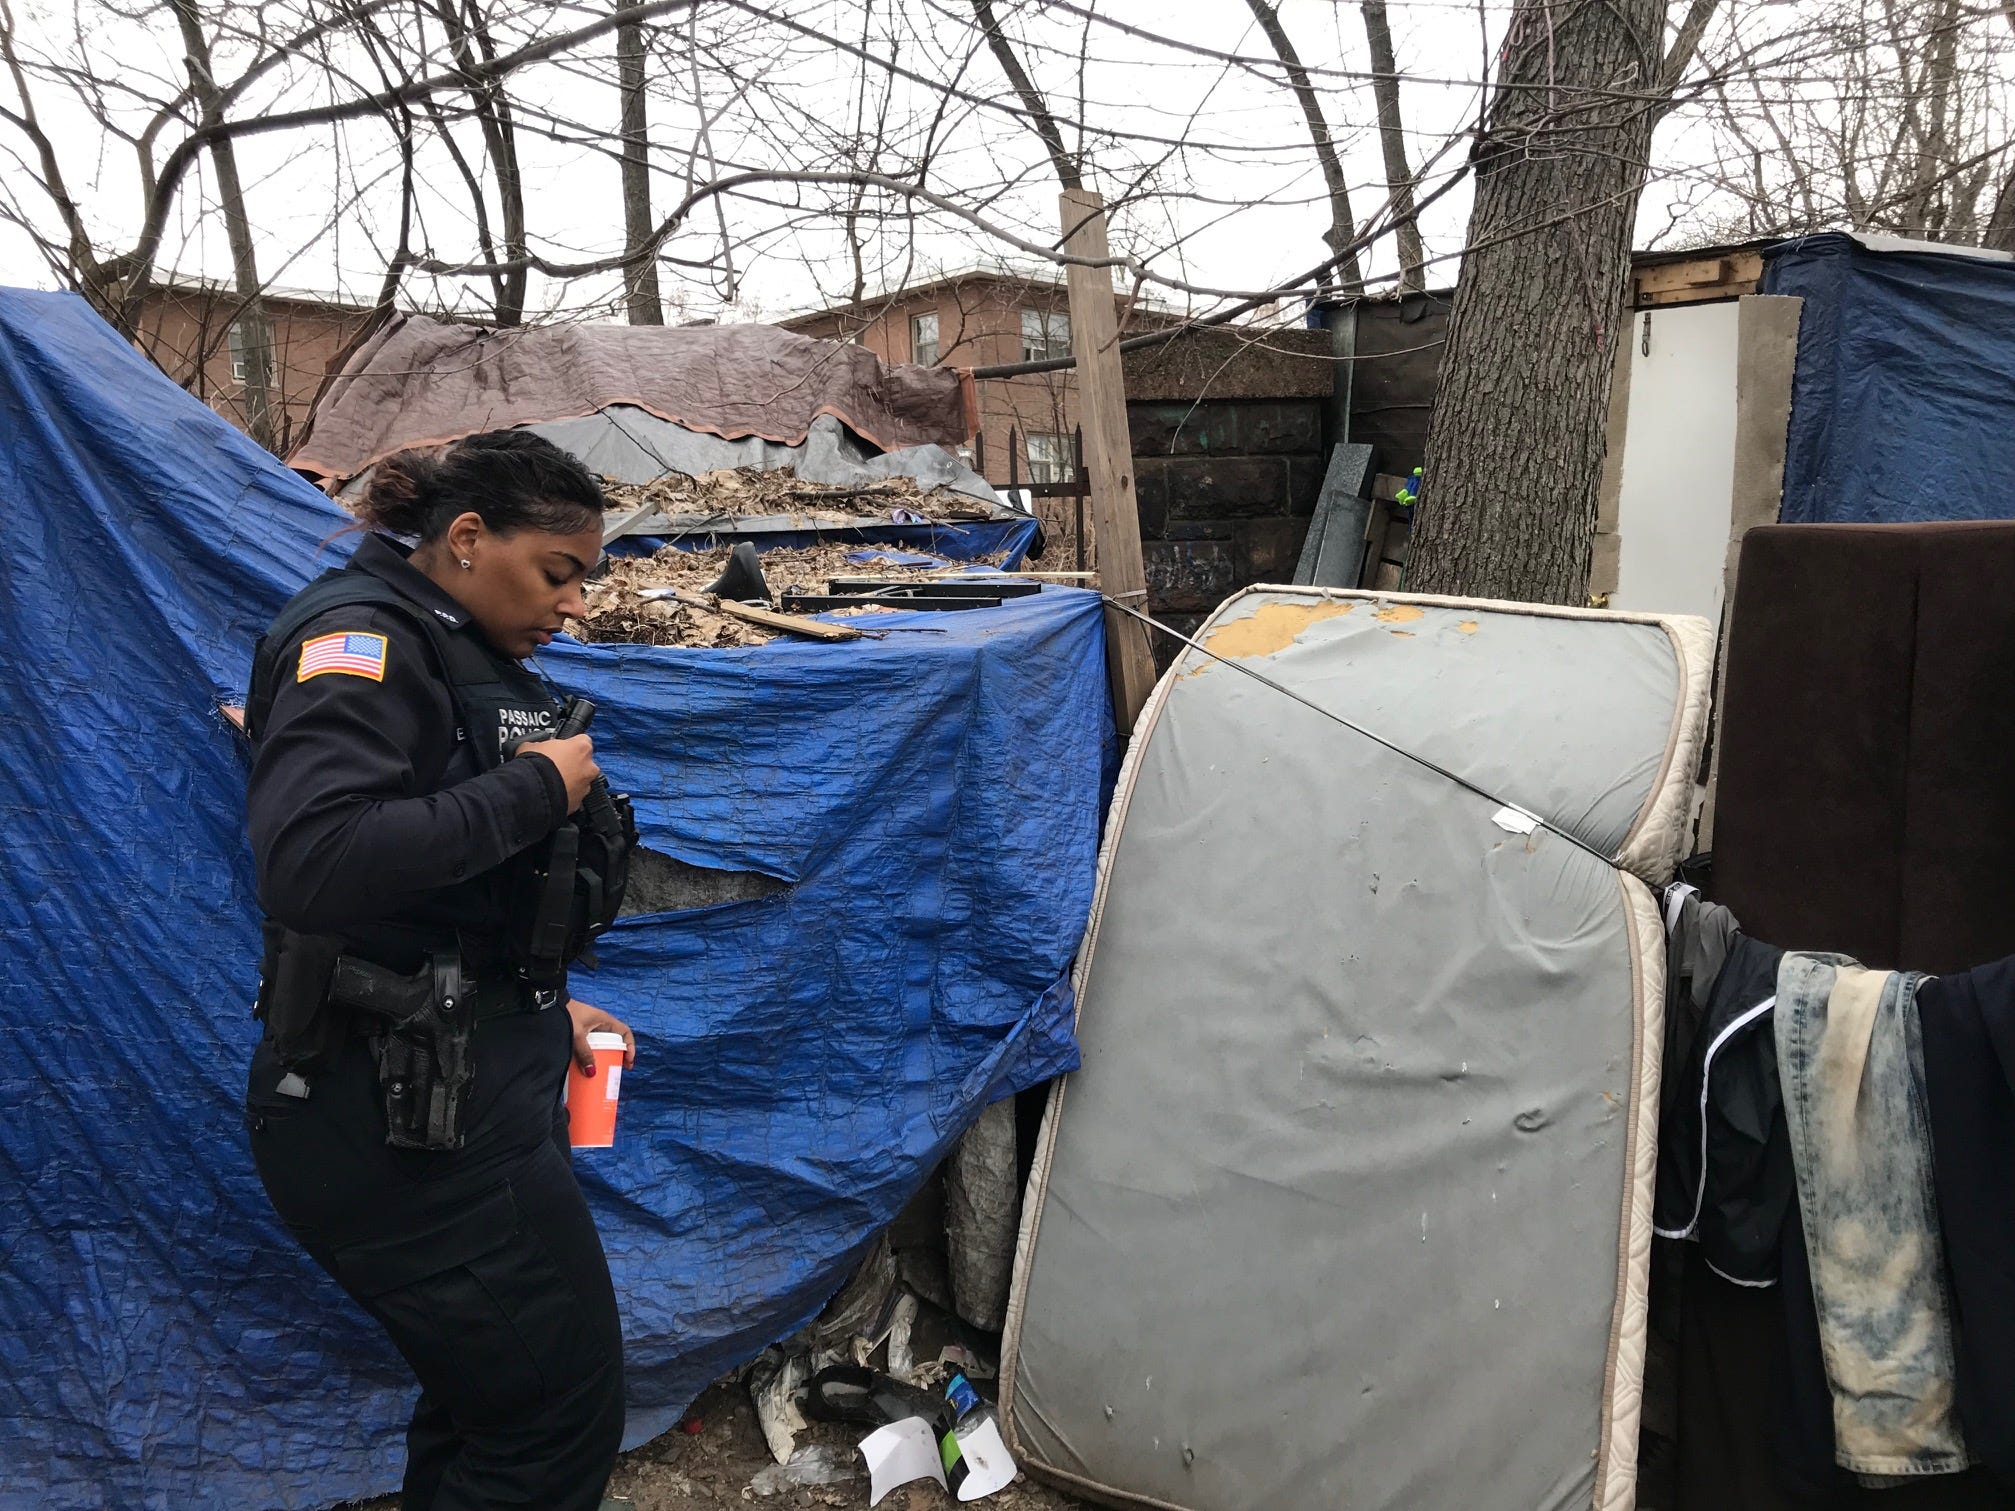 Passaic police officer helps with the annual Point in Time homeless headcount by checking on various lean-tos to see anyone's home. This encampment is in Dundee Island Park by the Passaic River.